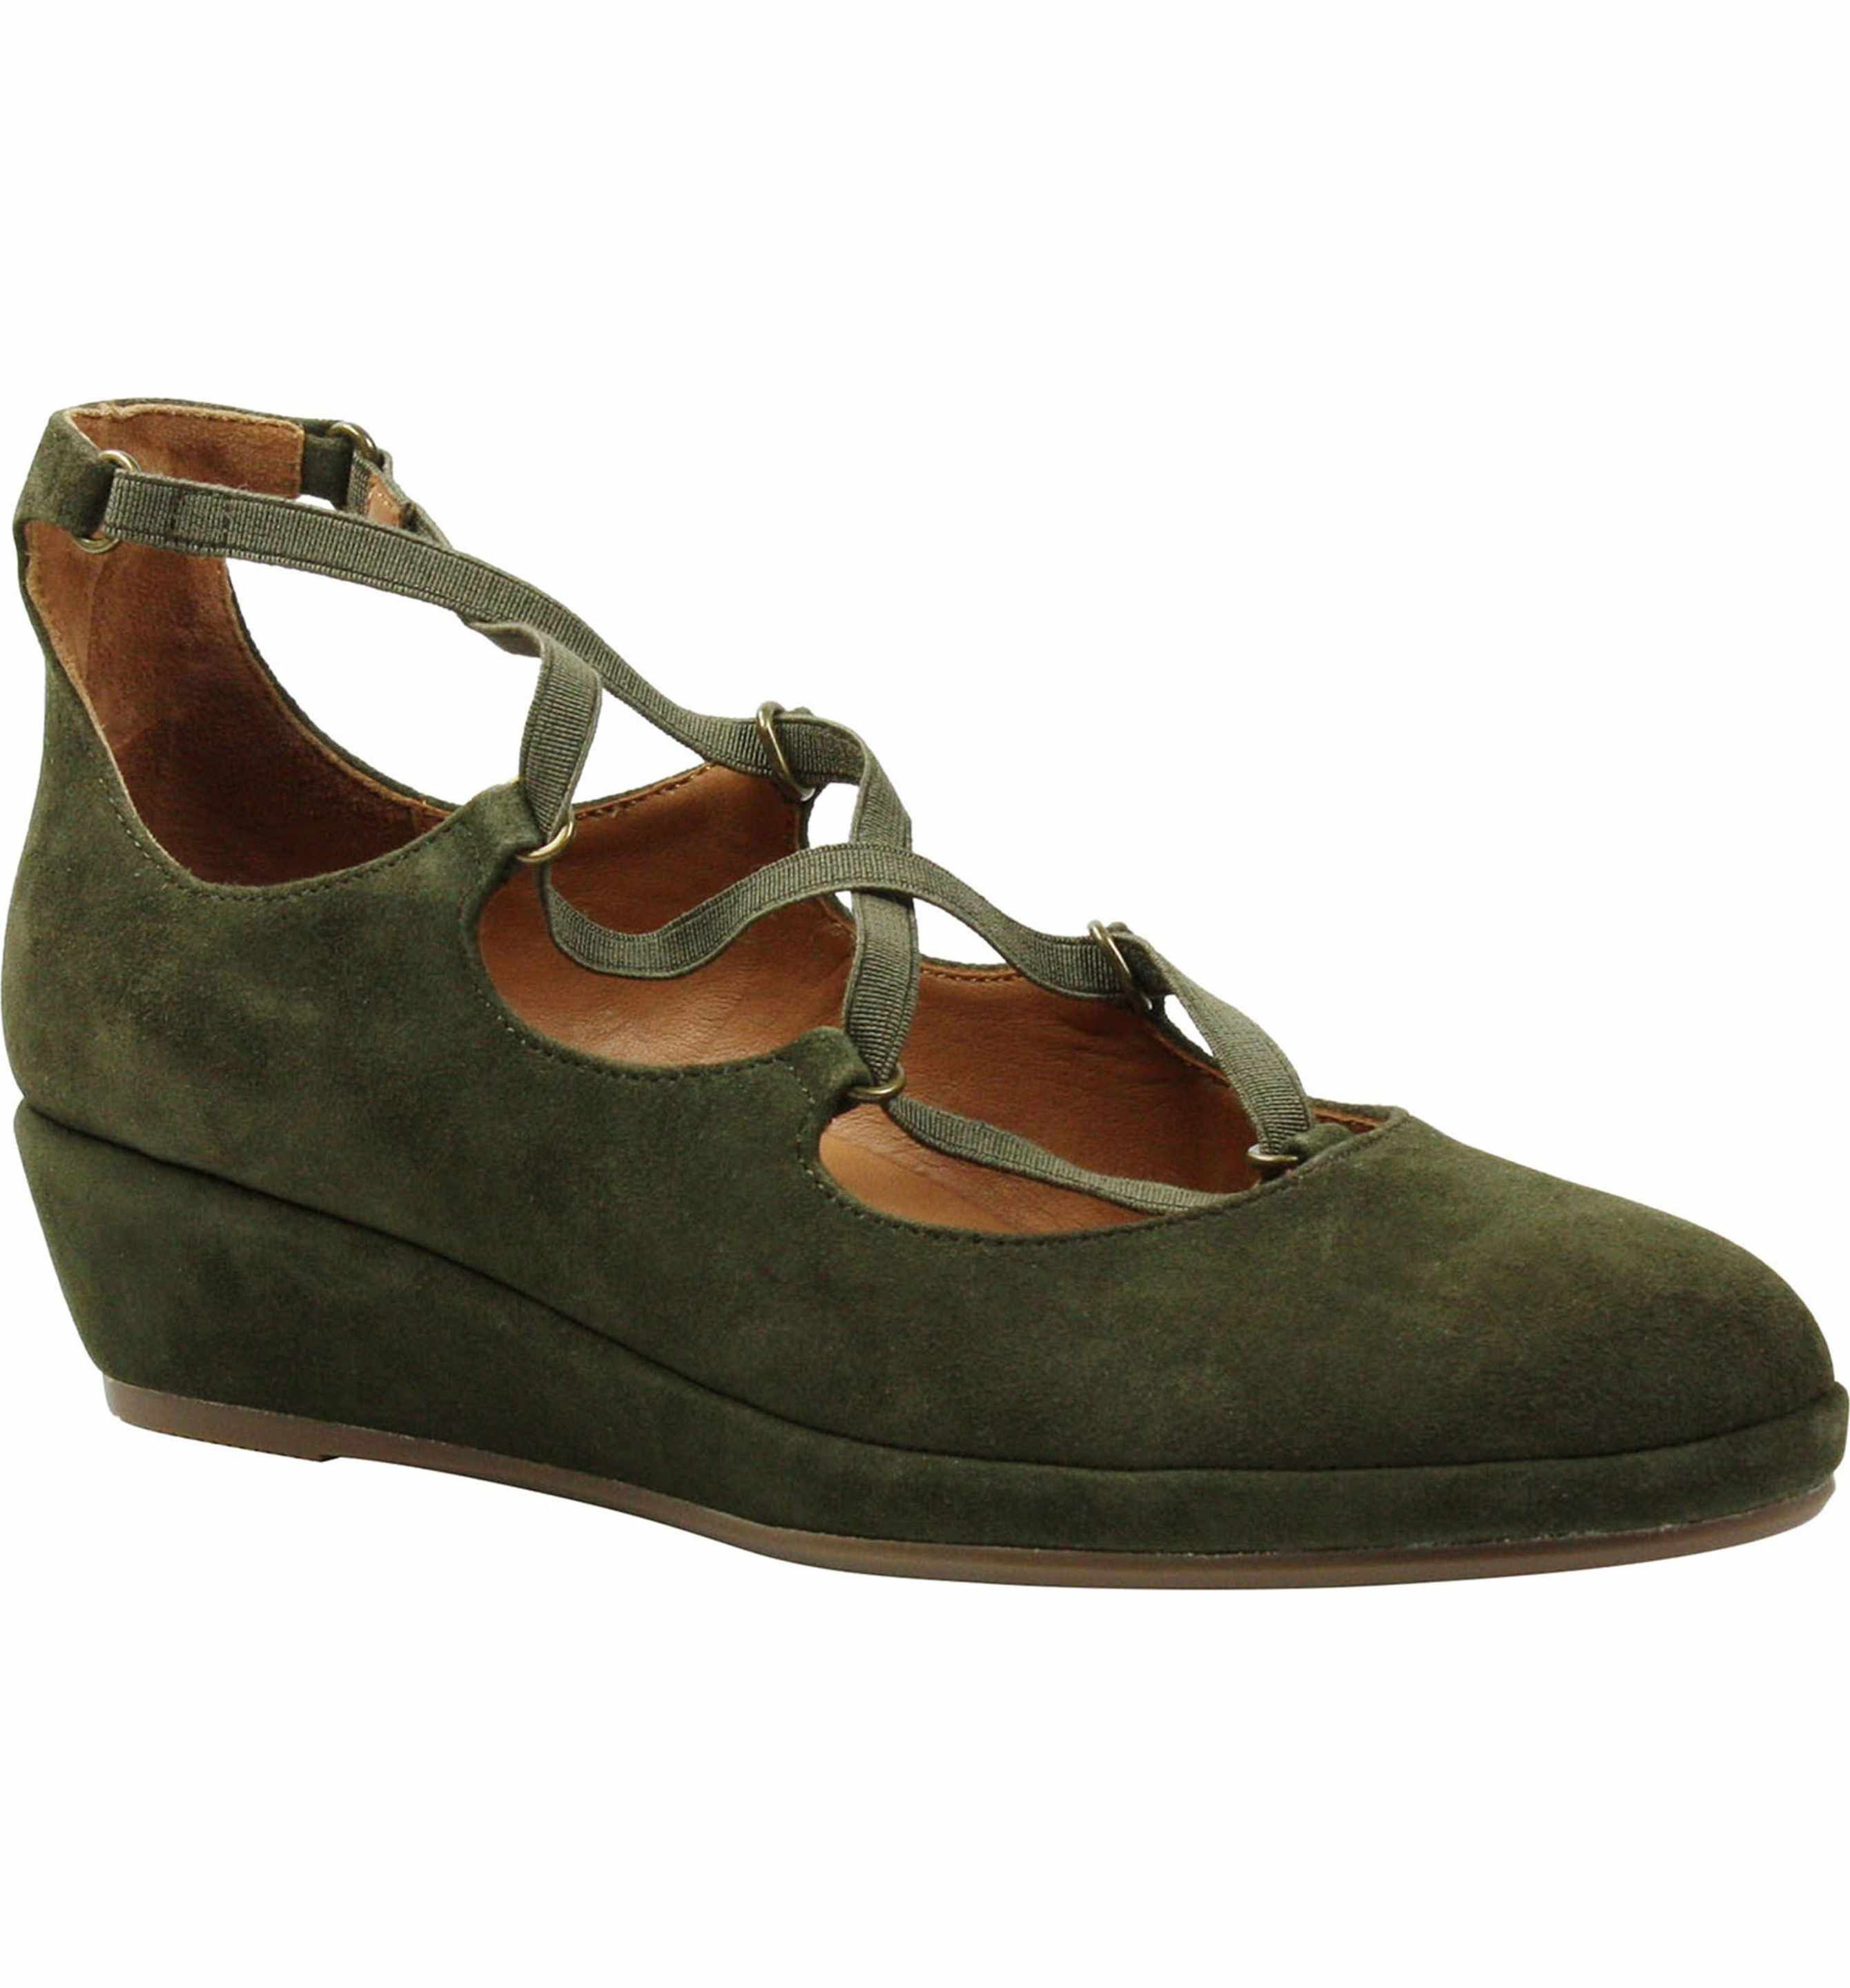 Benham Wedge Slip-Ons